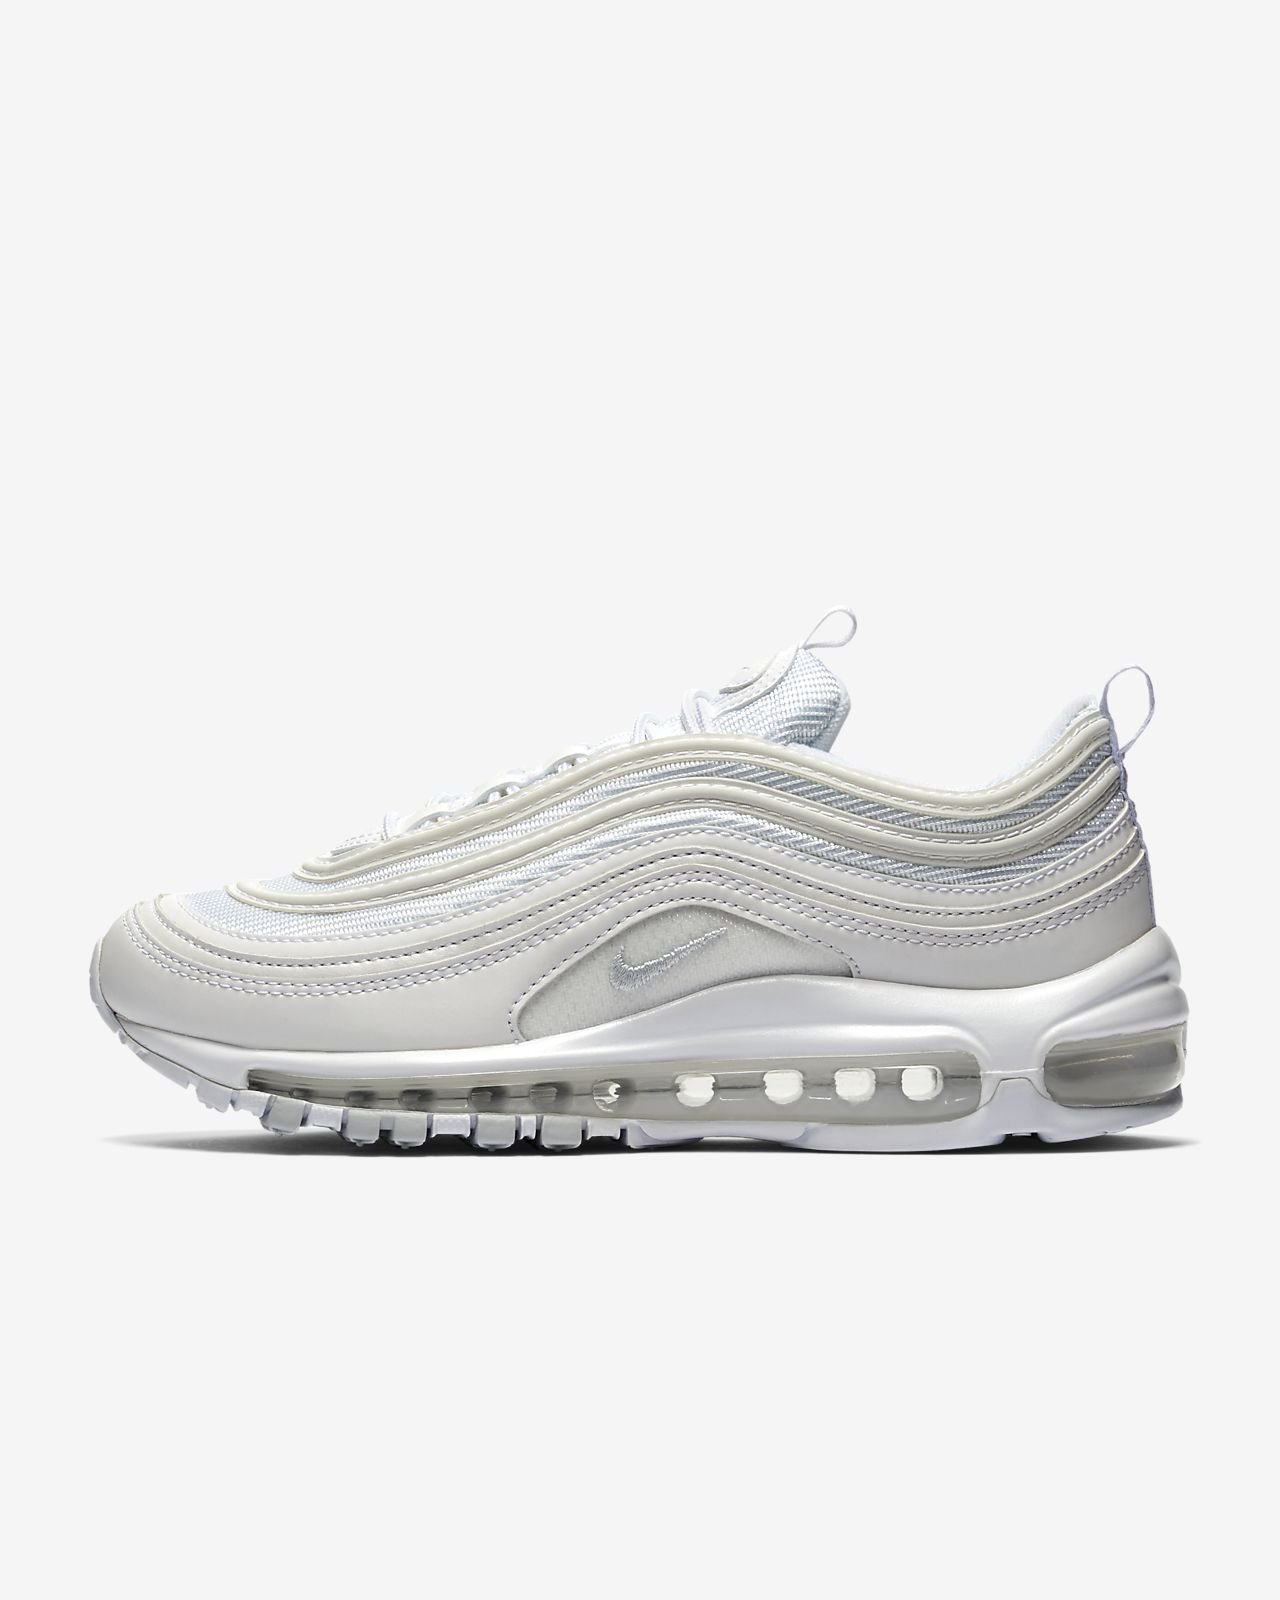 Nike Air Max 97 Women's Shoe